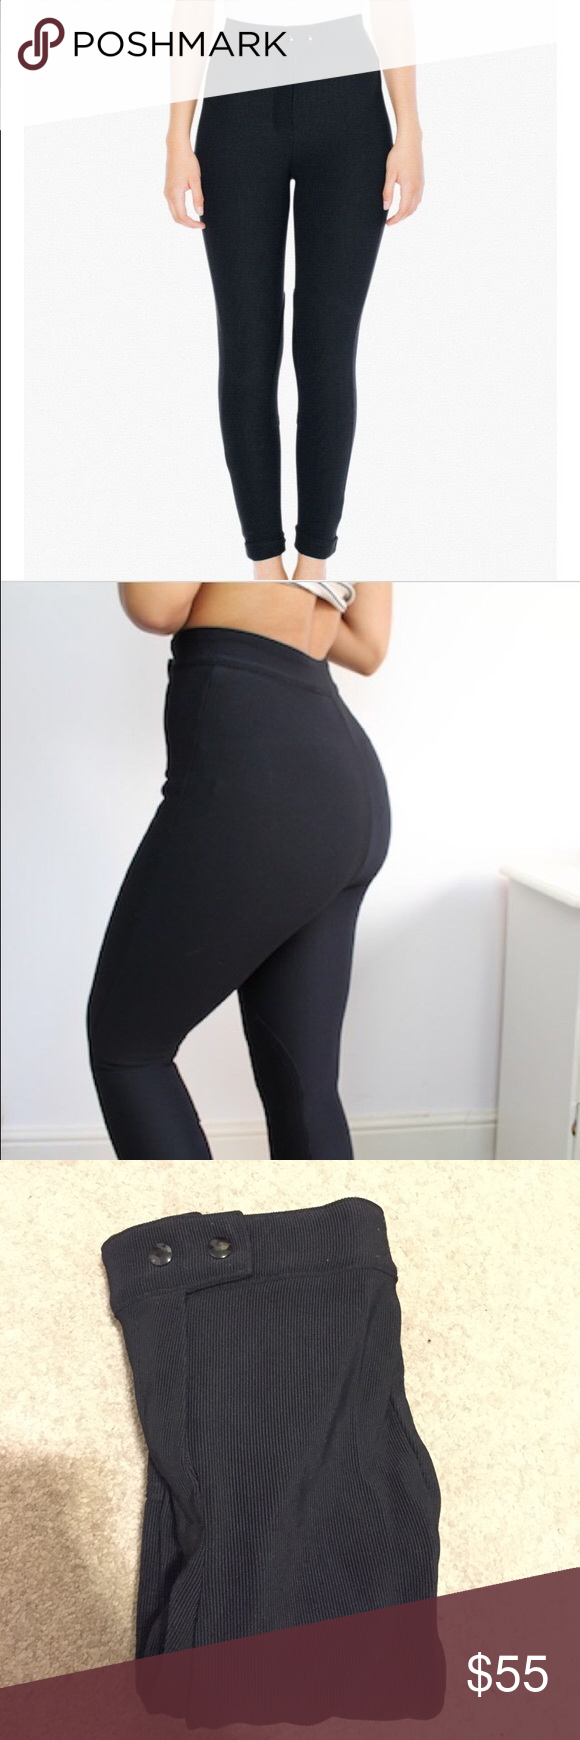 How to american wear apparel riding pants new photo